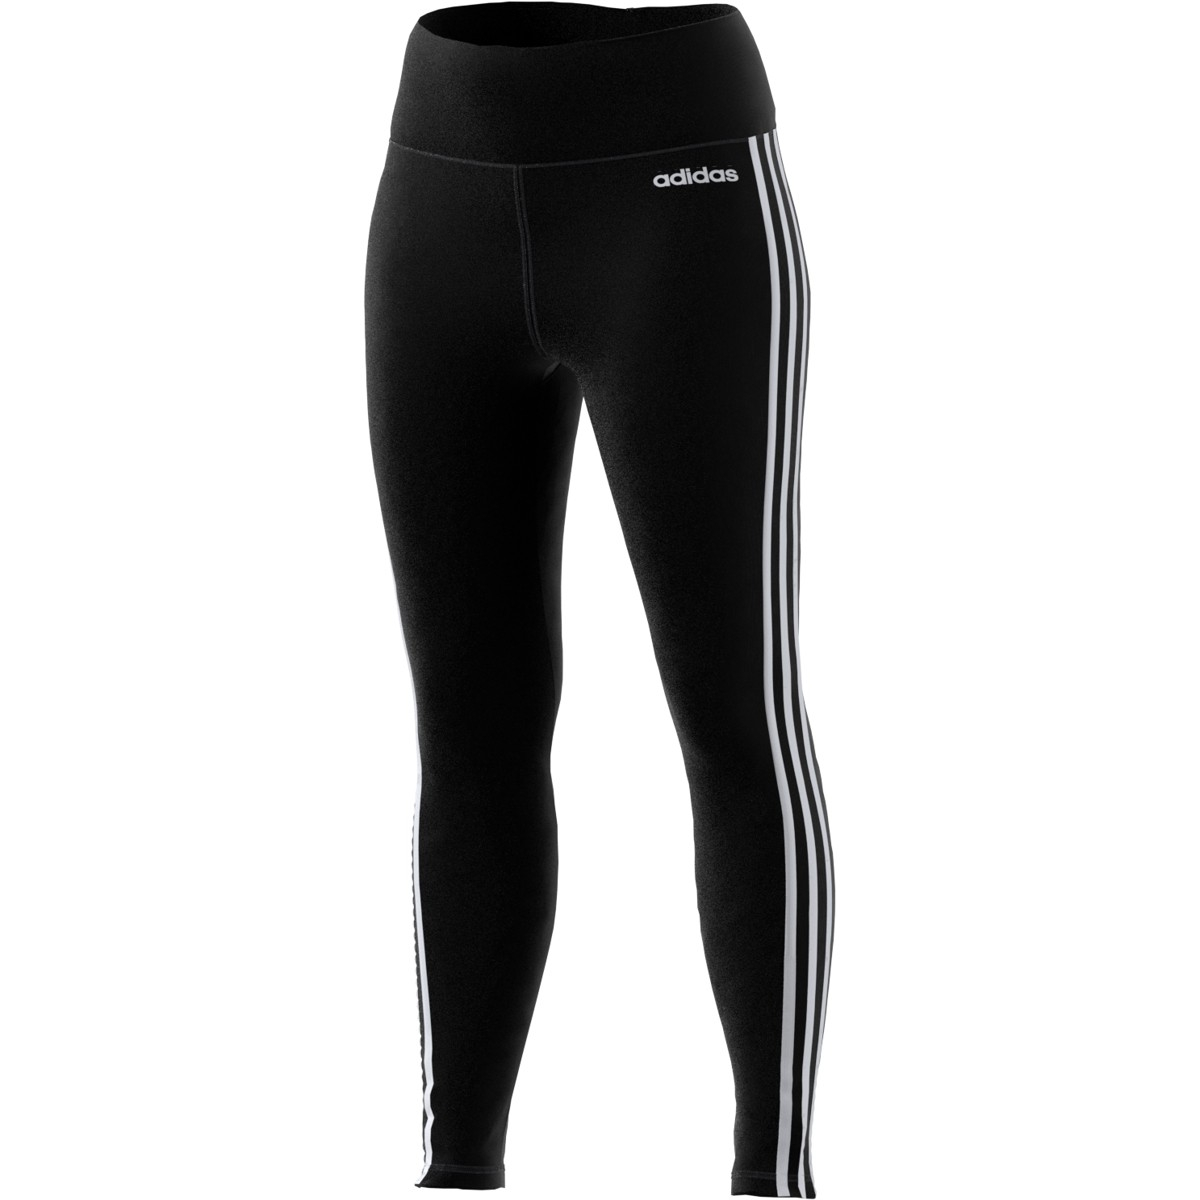 Move 3-Stripes High-Rise Tights